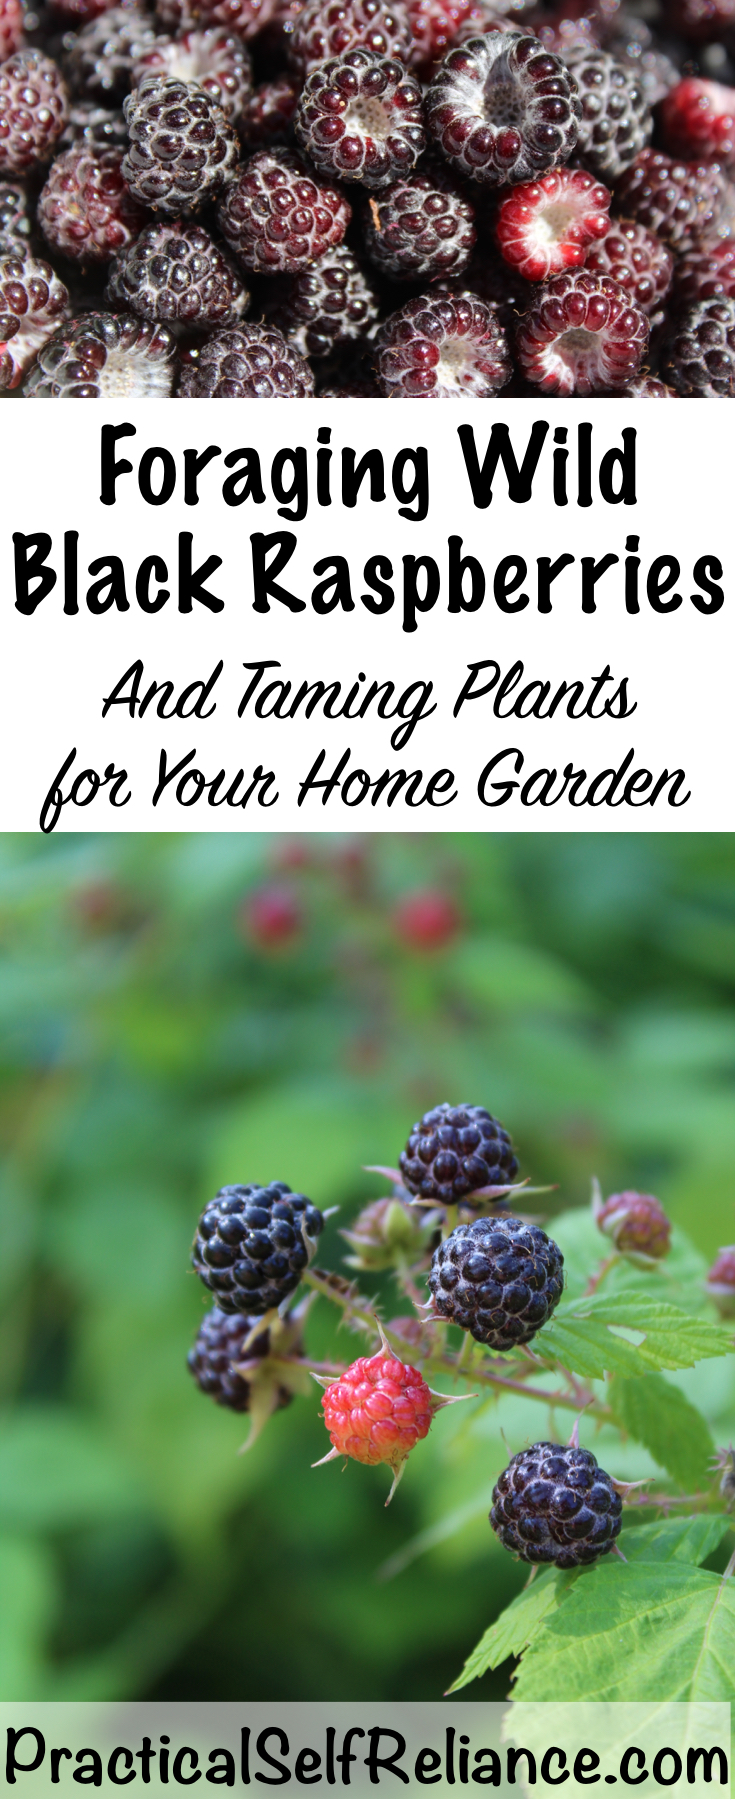 Foraging Wild Black Raspberries ~ Taming Plants for Your Home Garden